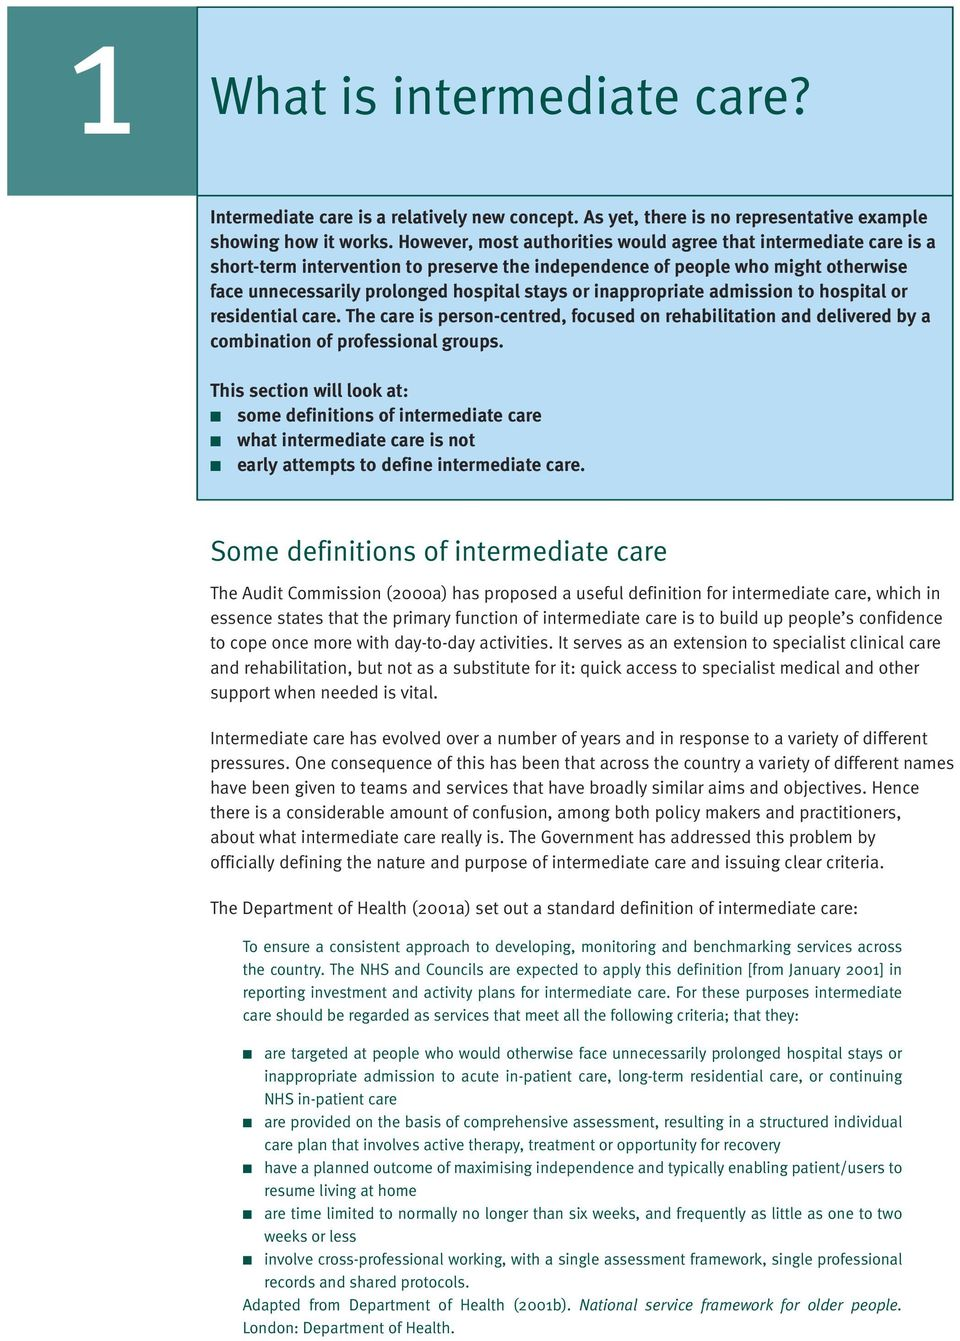 However, most authorities would agree that intermediate care is a short-term intervention to preserve the independence of people who might otherwise face unnecessarily prolonged hospital stays or